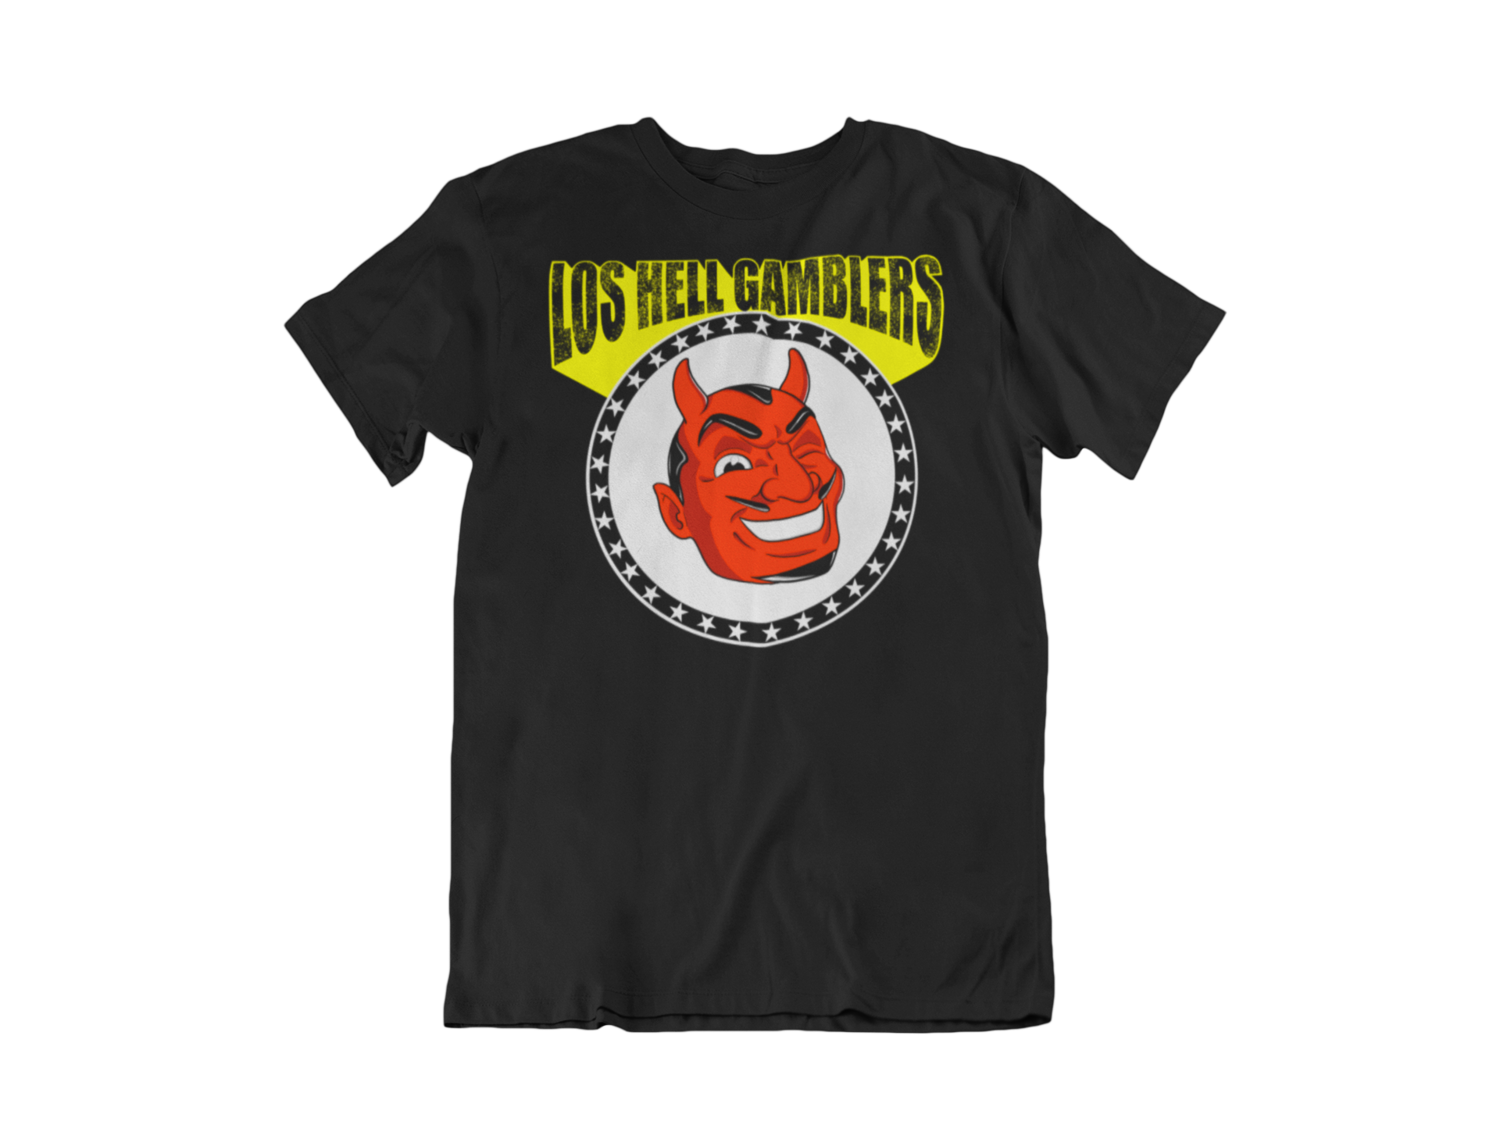 "Los HELL GAMBLERS ""Red demon logo"" T-SHIRT MEN"